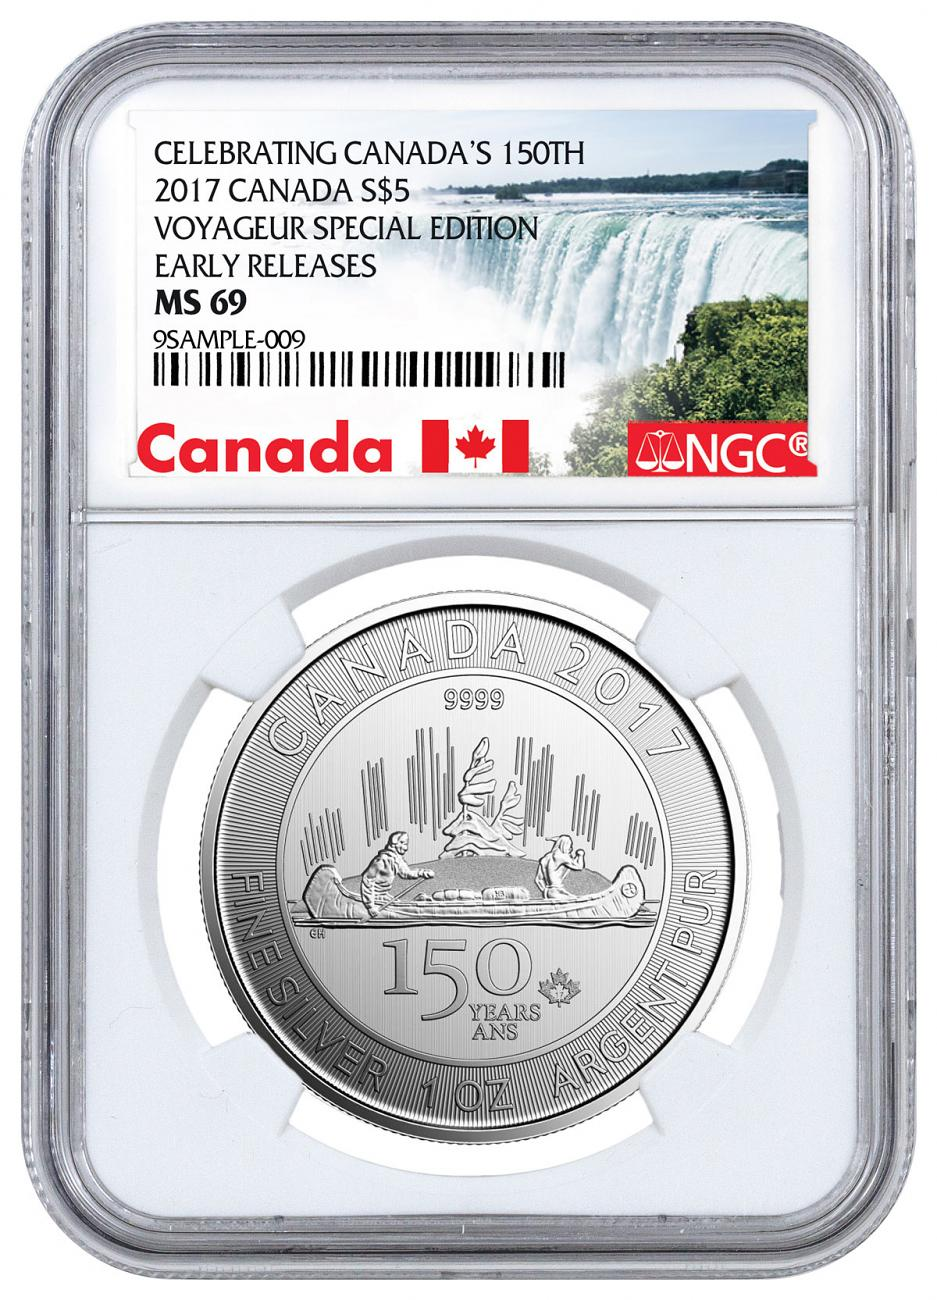 2017 Canada Celebrating Canada's 150th - Voyageur Special Edition 1 oz Silver $5 Coin NGC MS69 ER Exclusive Canada Label